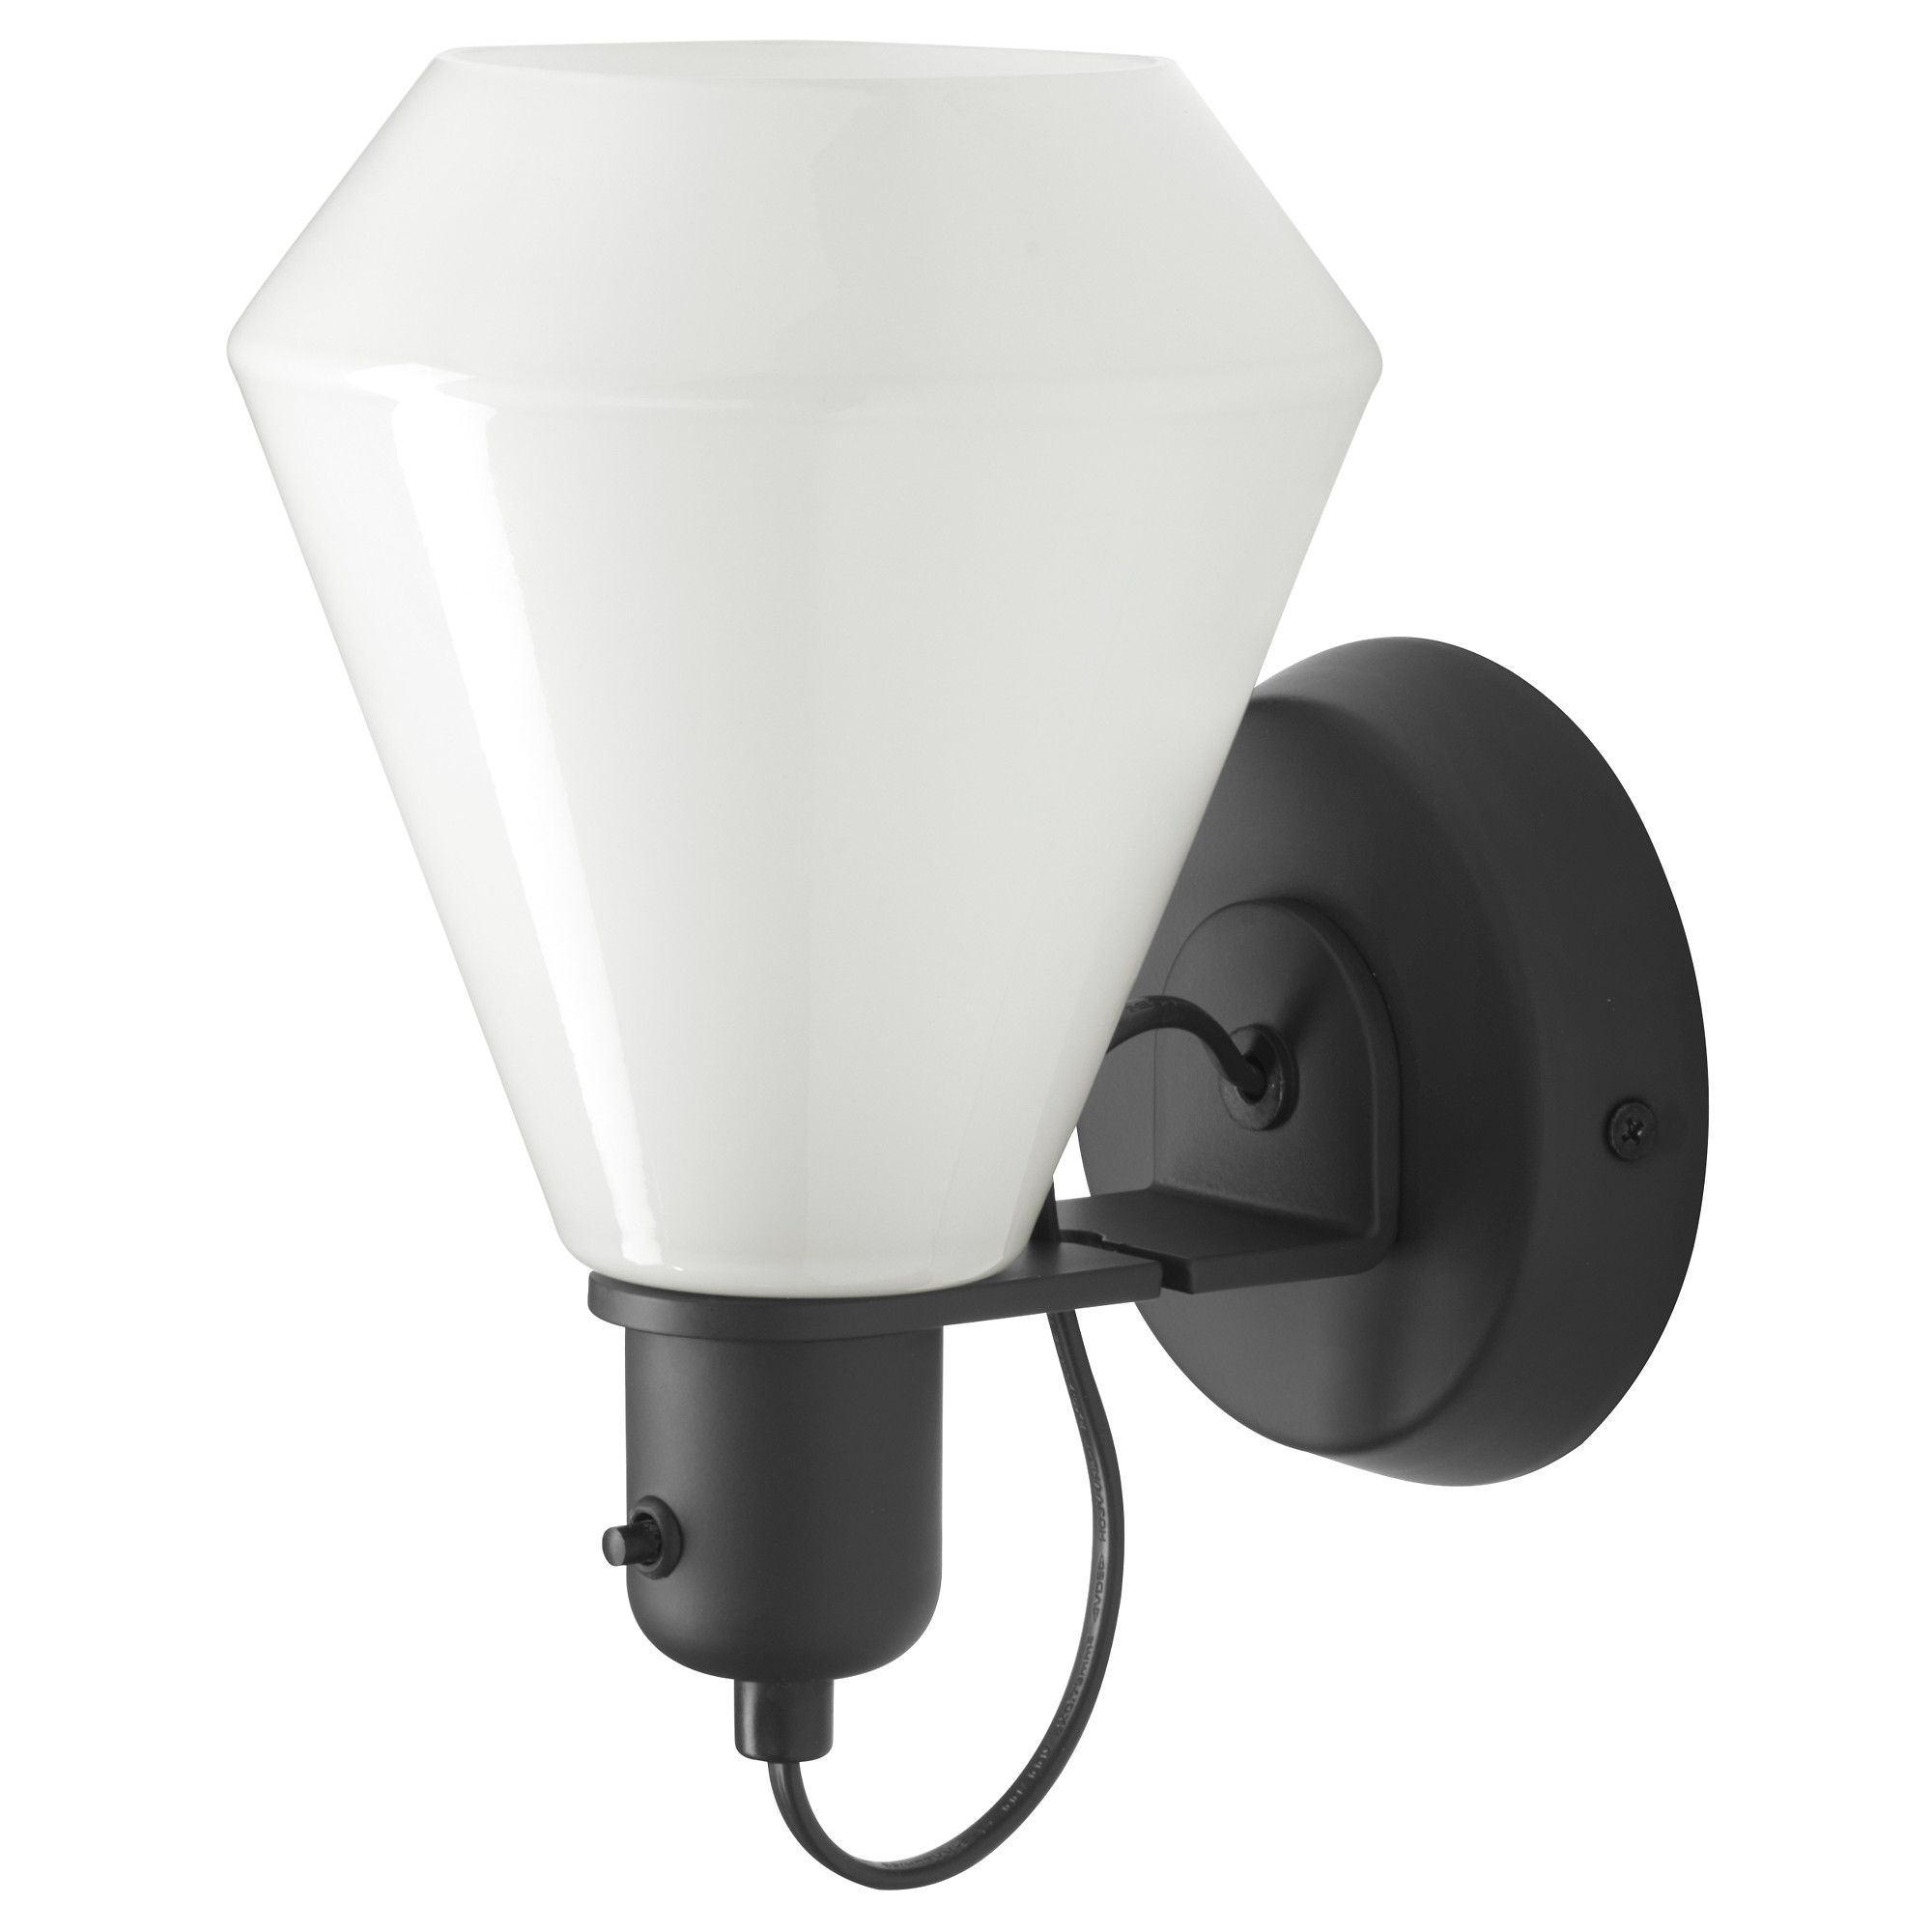 IKEA   ÄLVÄNGEN, Wall Lamp, Hardwire Installation , Can Be Mounted With The  Light Turned Up Or Down.Gives A Soft Glowing Light, That Gives Your Home A  Warm ...